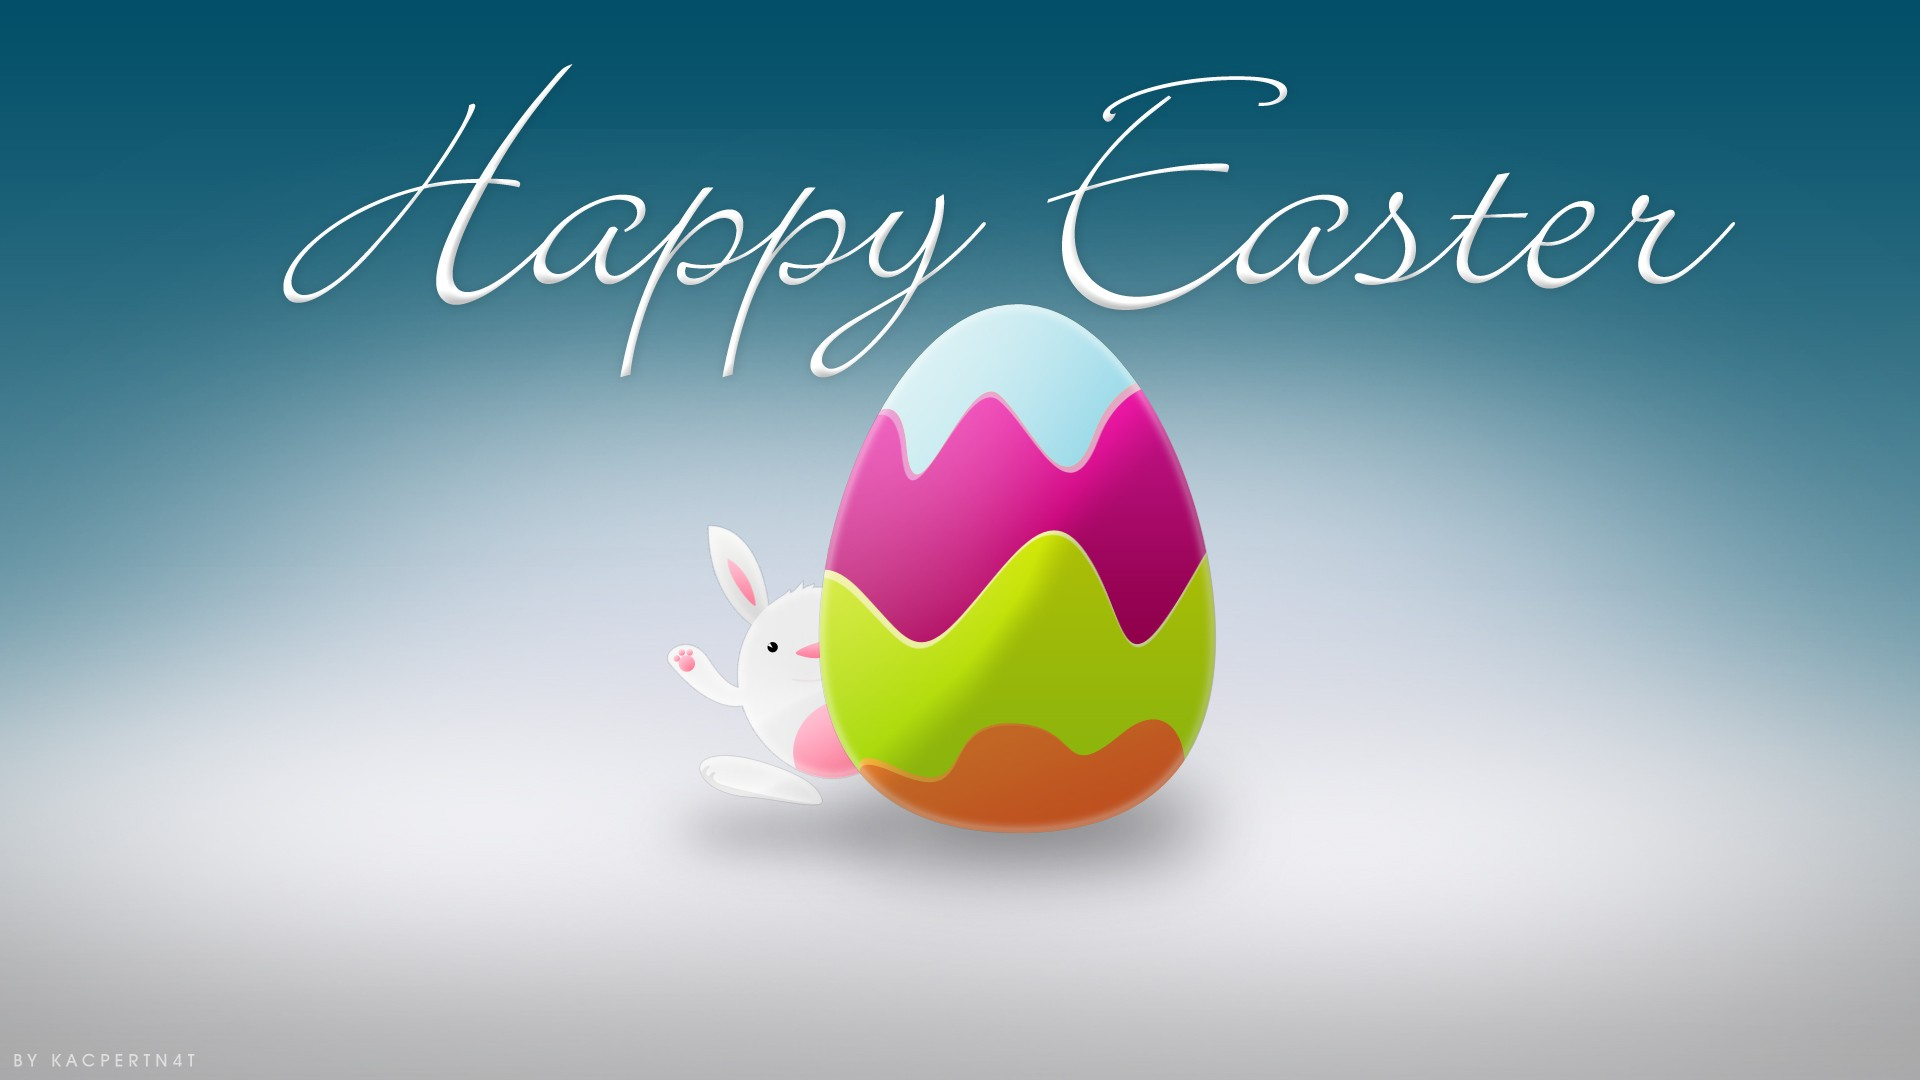 Happy Easter Day SMS Messages Quotes Wishes Fb Whatsapp Status 2016 1920x1080